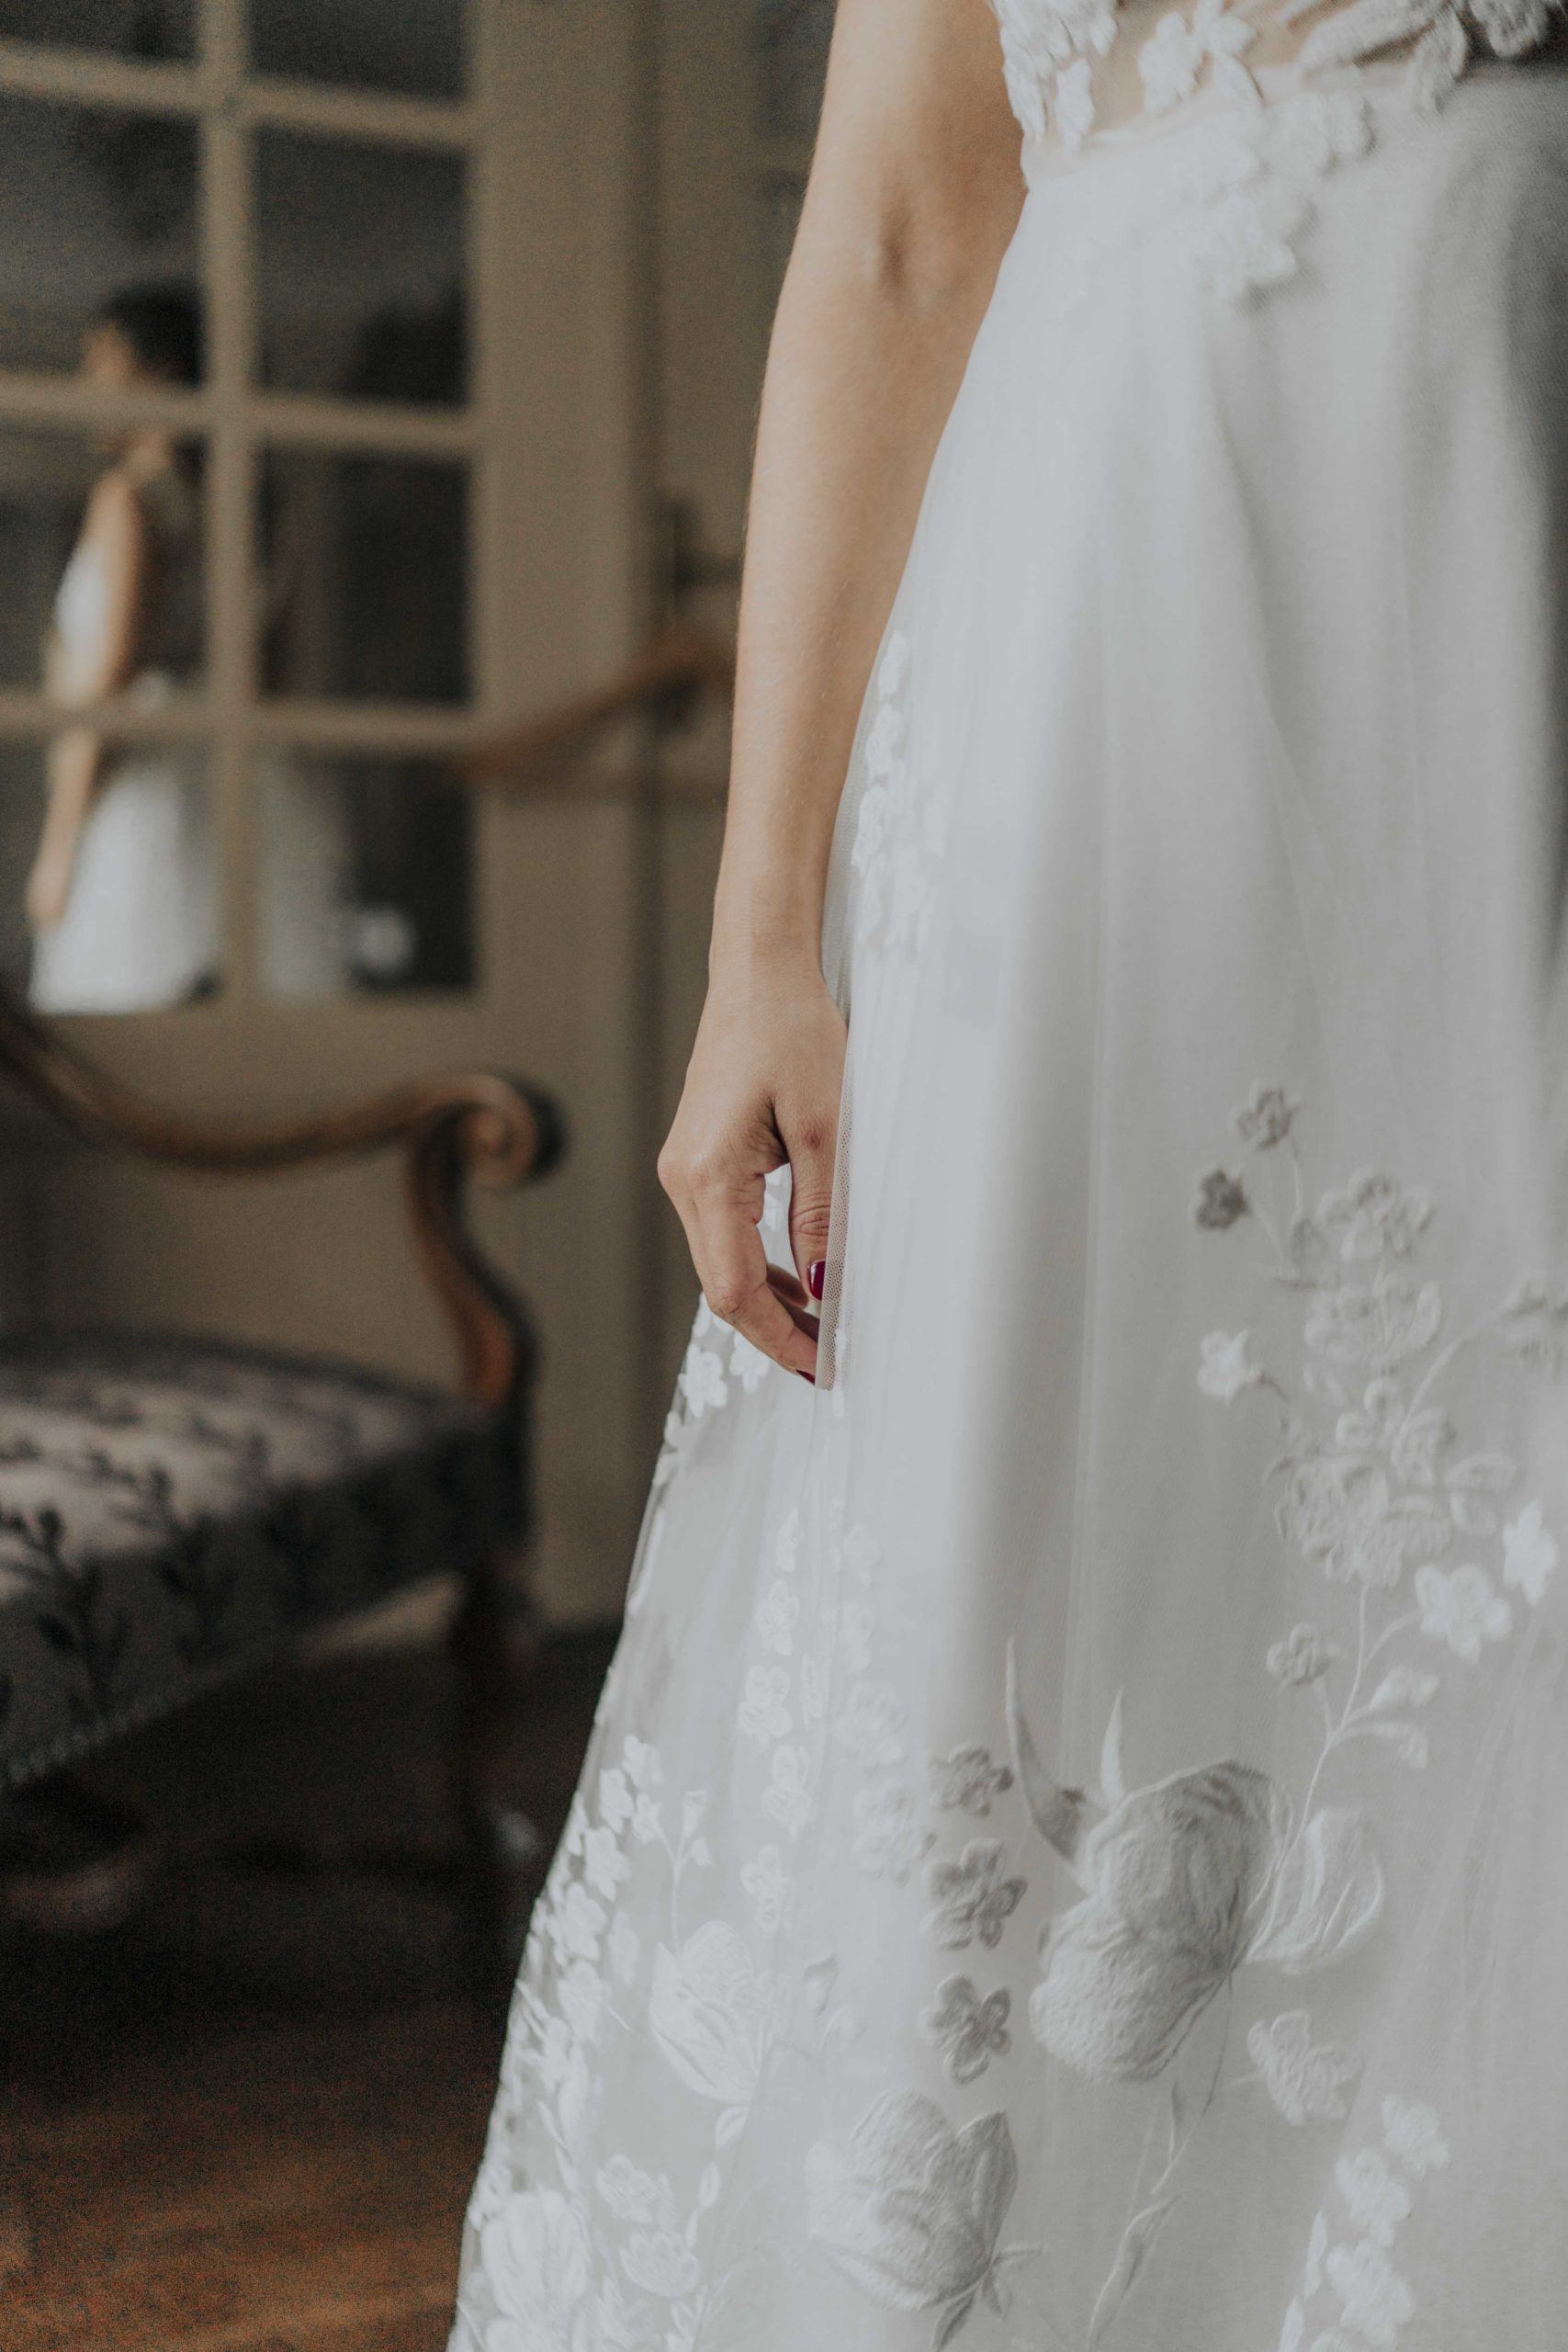 FOREVER_FANNY_MYARD_PHOTOGRAPHY_LN_MARIAGE-113